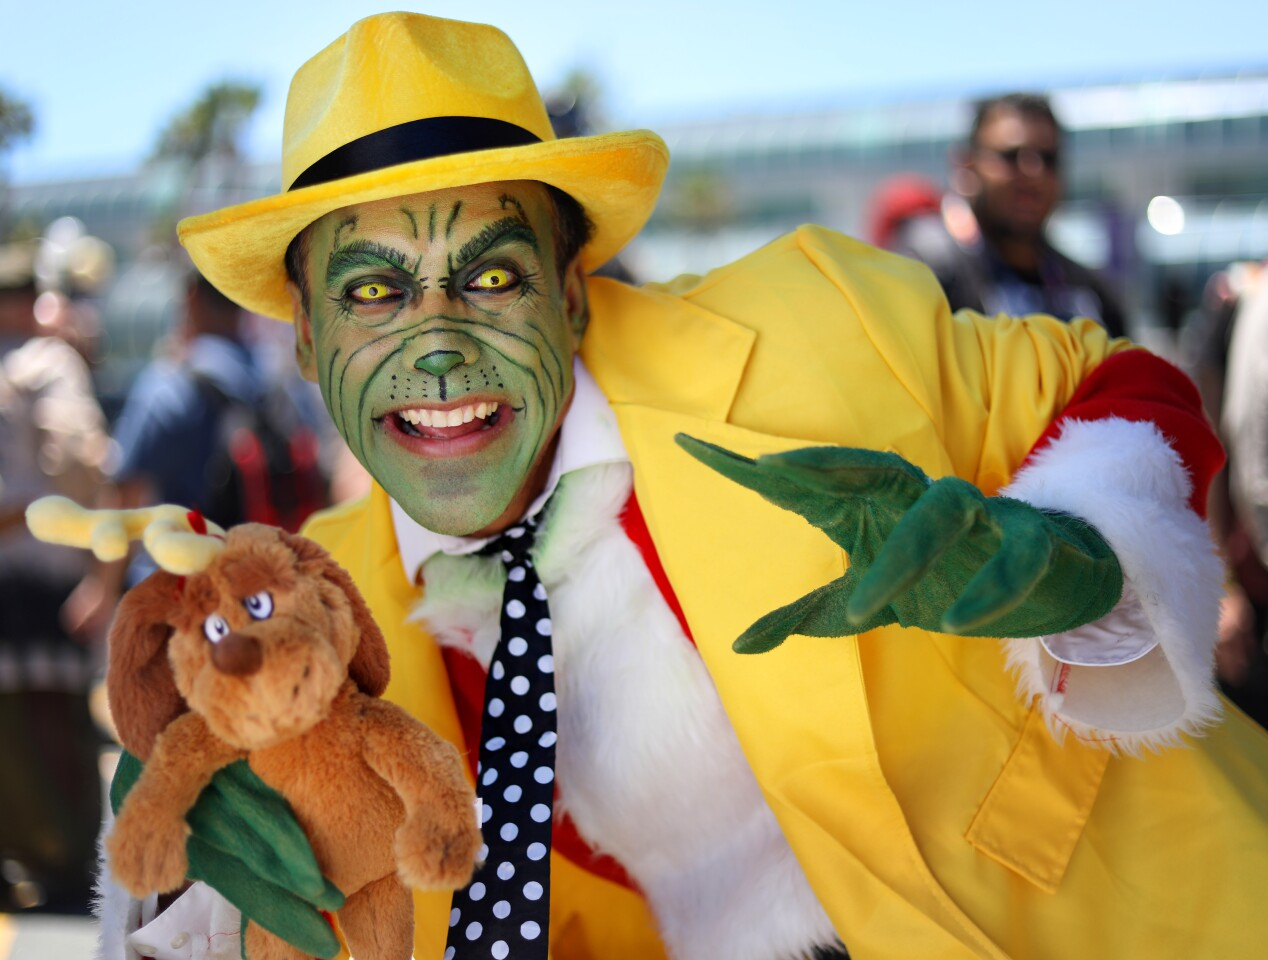 David Perez of Sacramento dressed as The Mask That Stole Christmas at Comic Con International in San Diego on July 20, 2019.